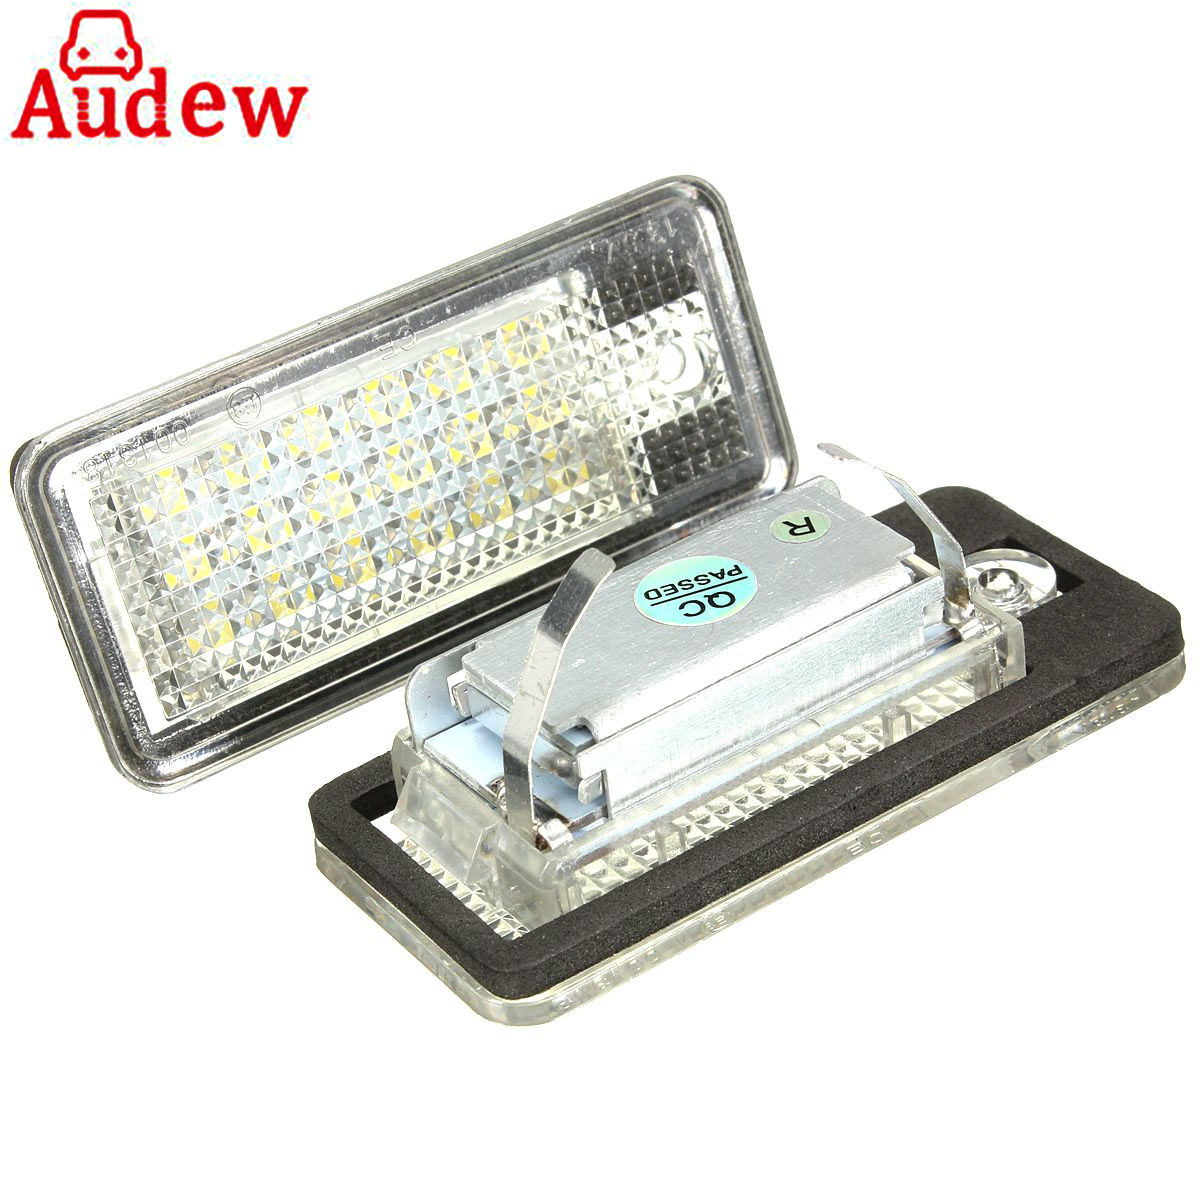 2Pcs Car Error Free 18 LED License Number Plate Light White Lamp For Audi A3 S3 A4 S4 B6 B7 A6 S6 A8 Q7 2pcs 12v white led license plate light number lamp for renault twingo clio megane lagane error free